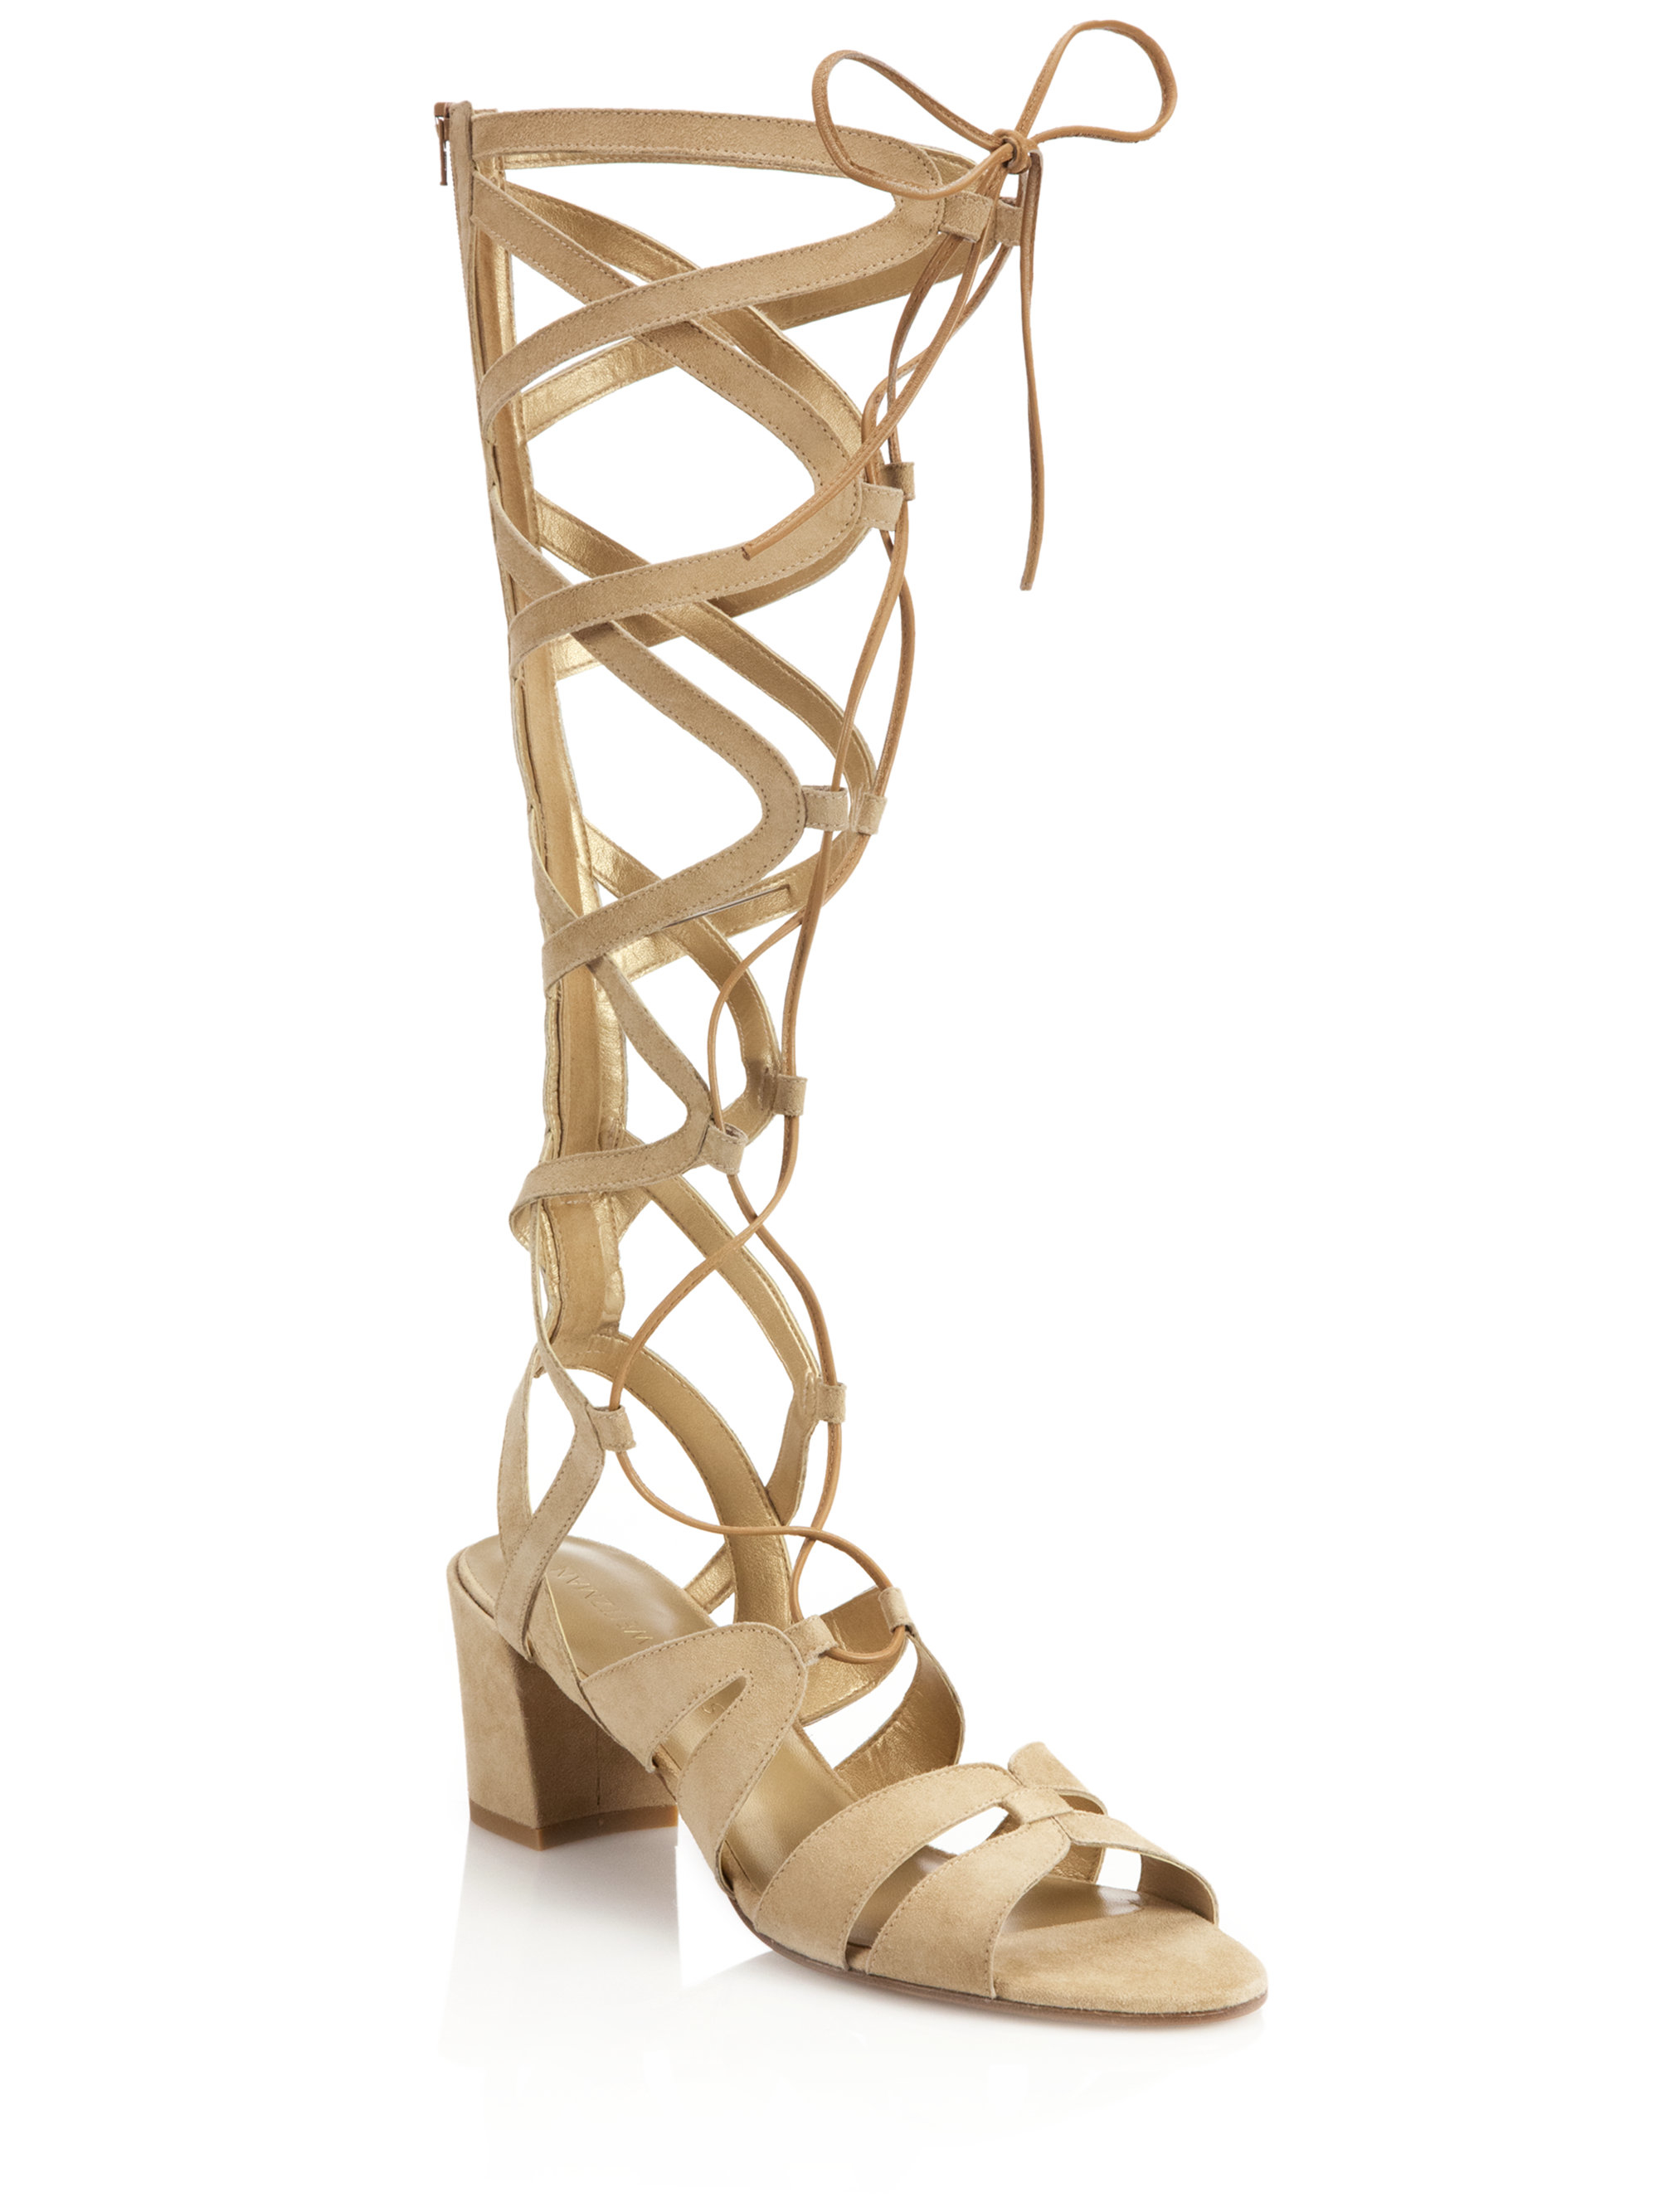 7f0e04a52449 Lyst - Stuart Weitzman Grecian Tall Suede Gladiator Sandals in Natural